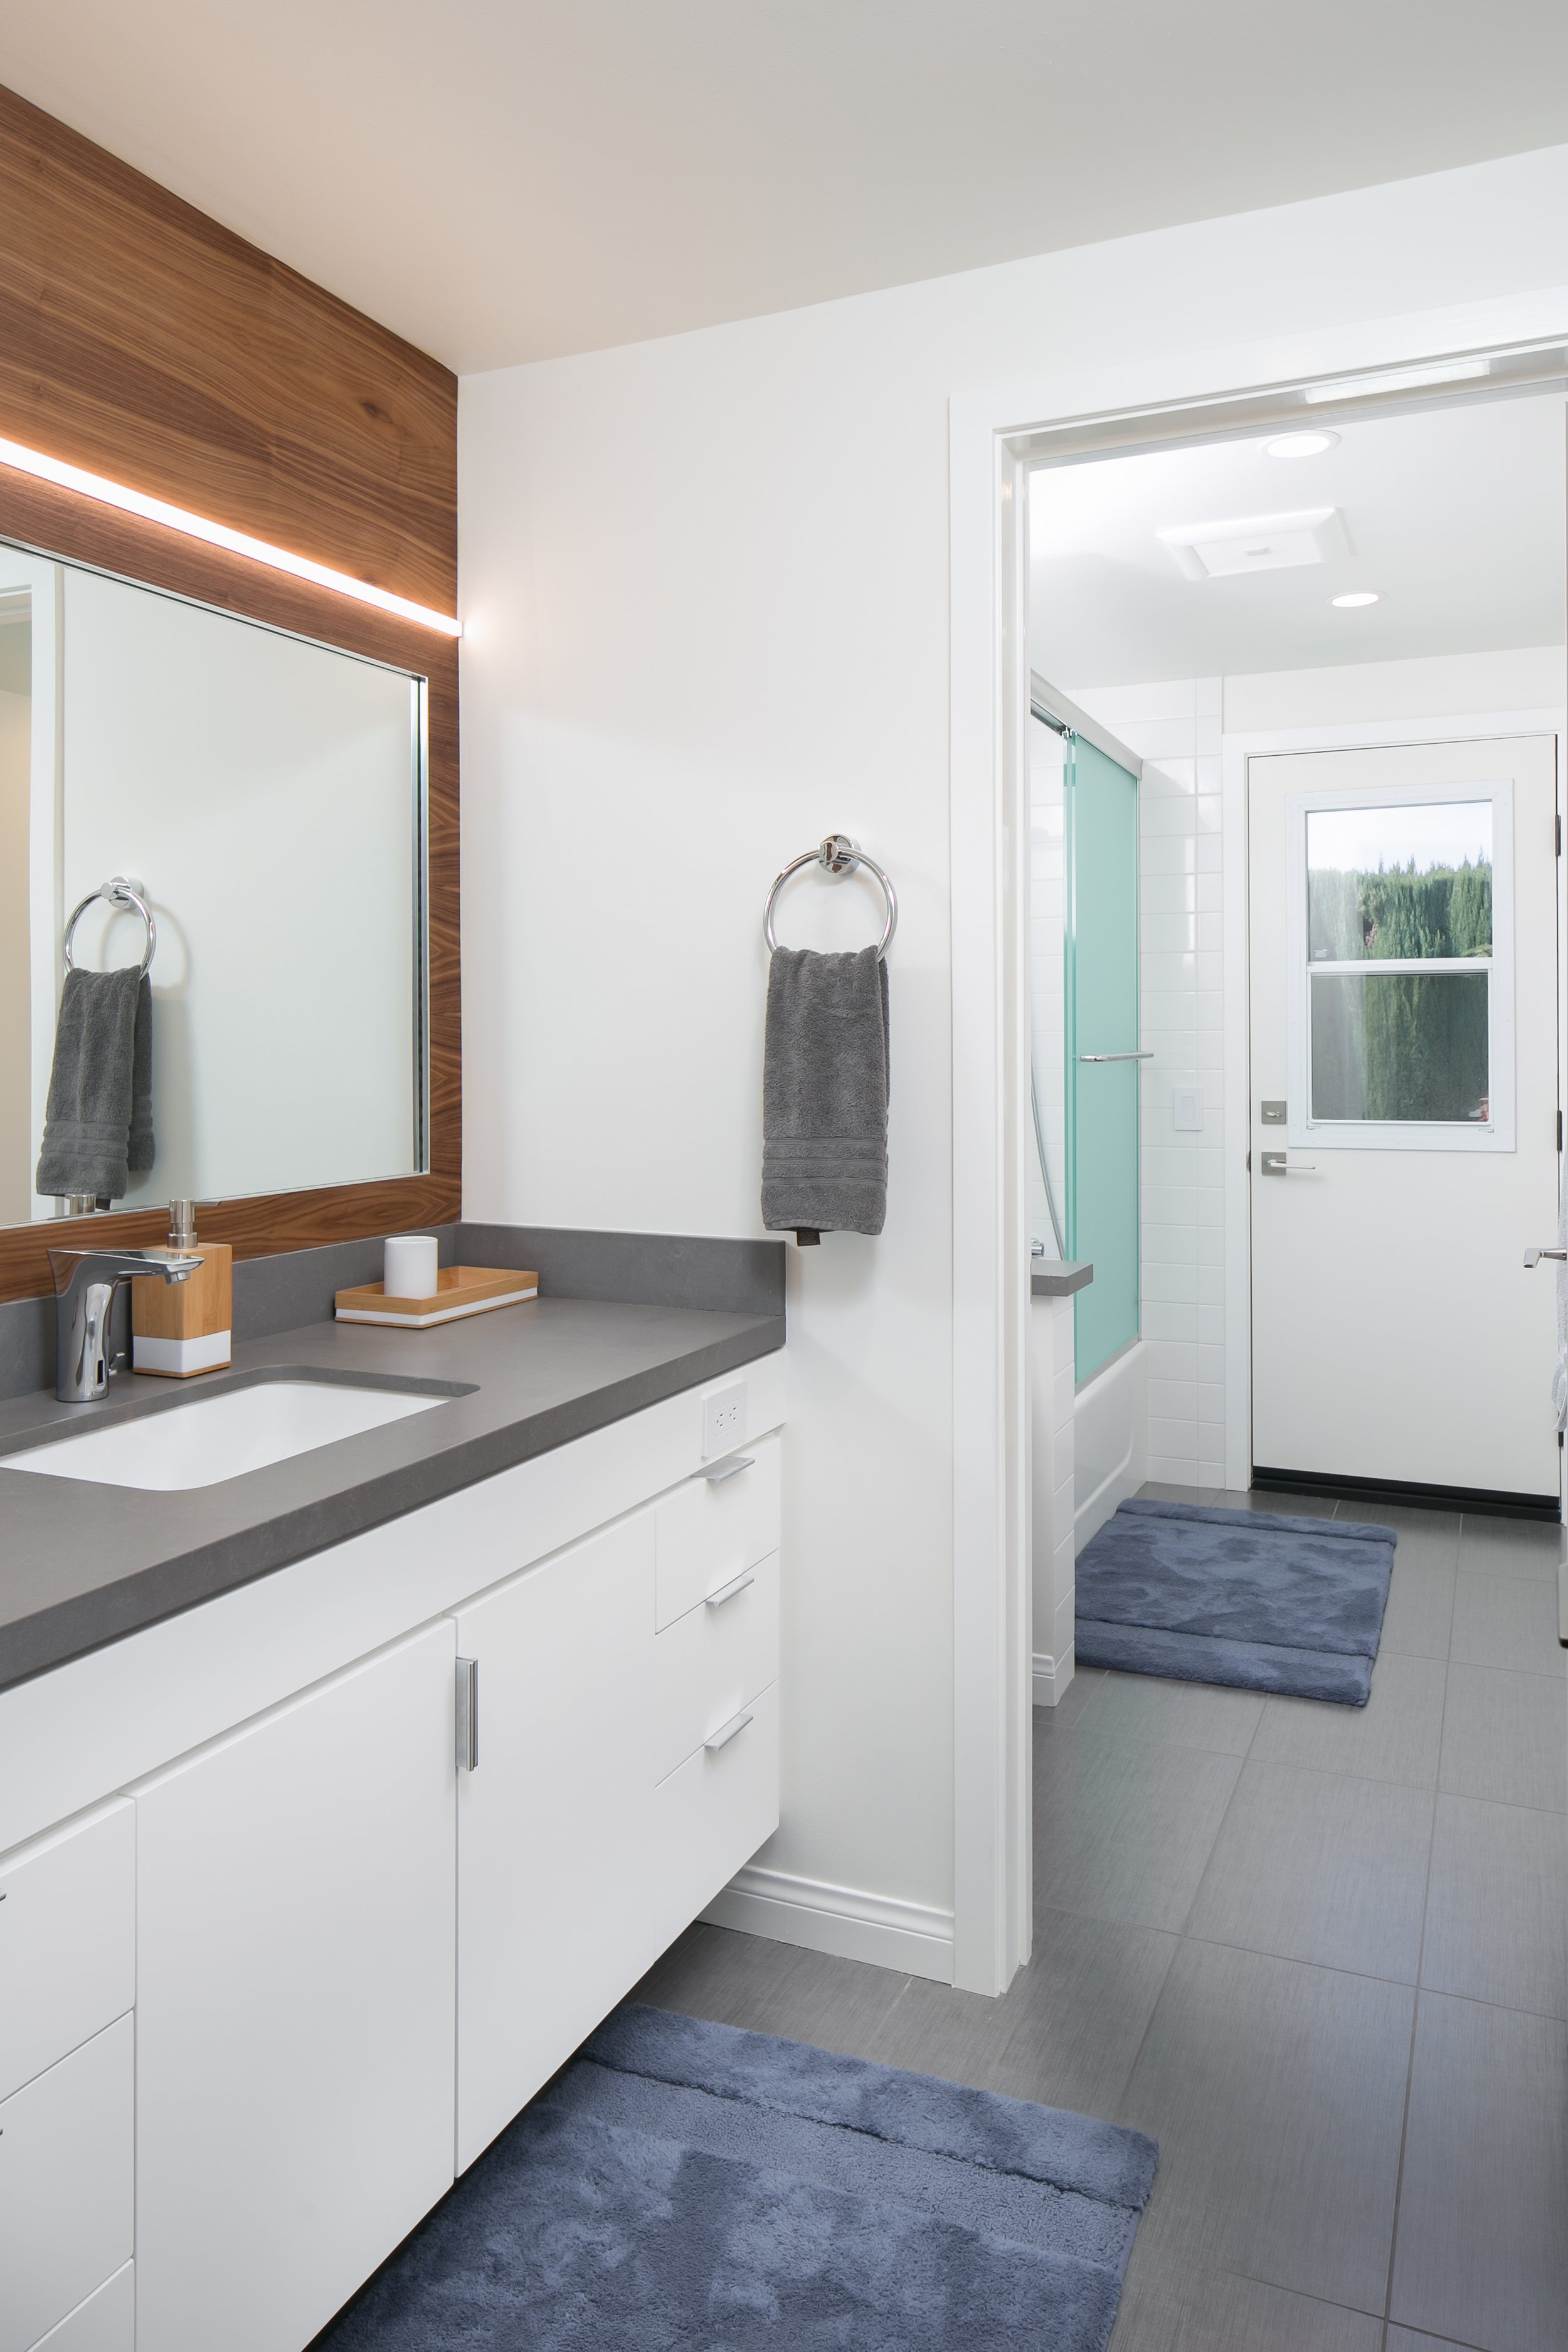 Poolside bathroom: modern, bright and functional